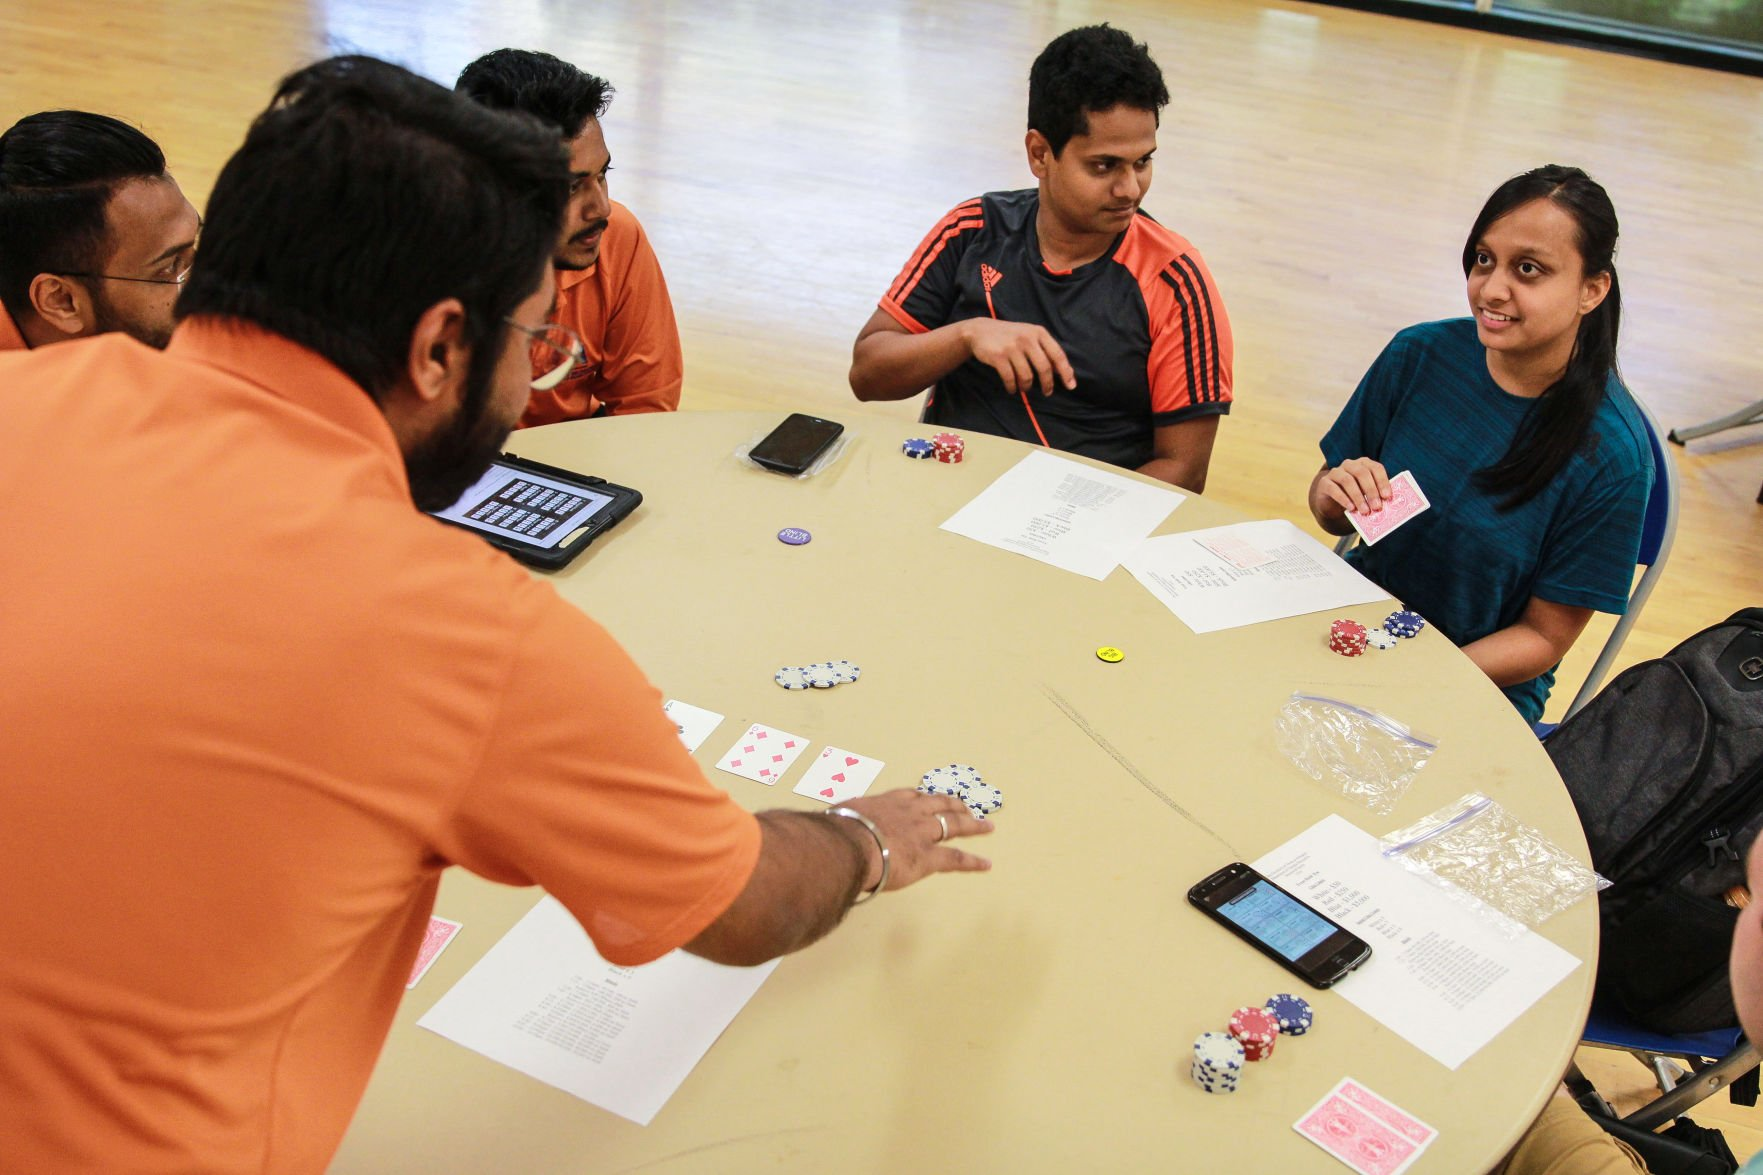 Students compete in intramural poker tournament